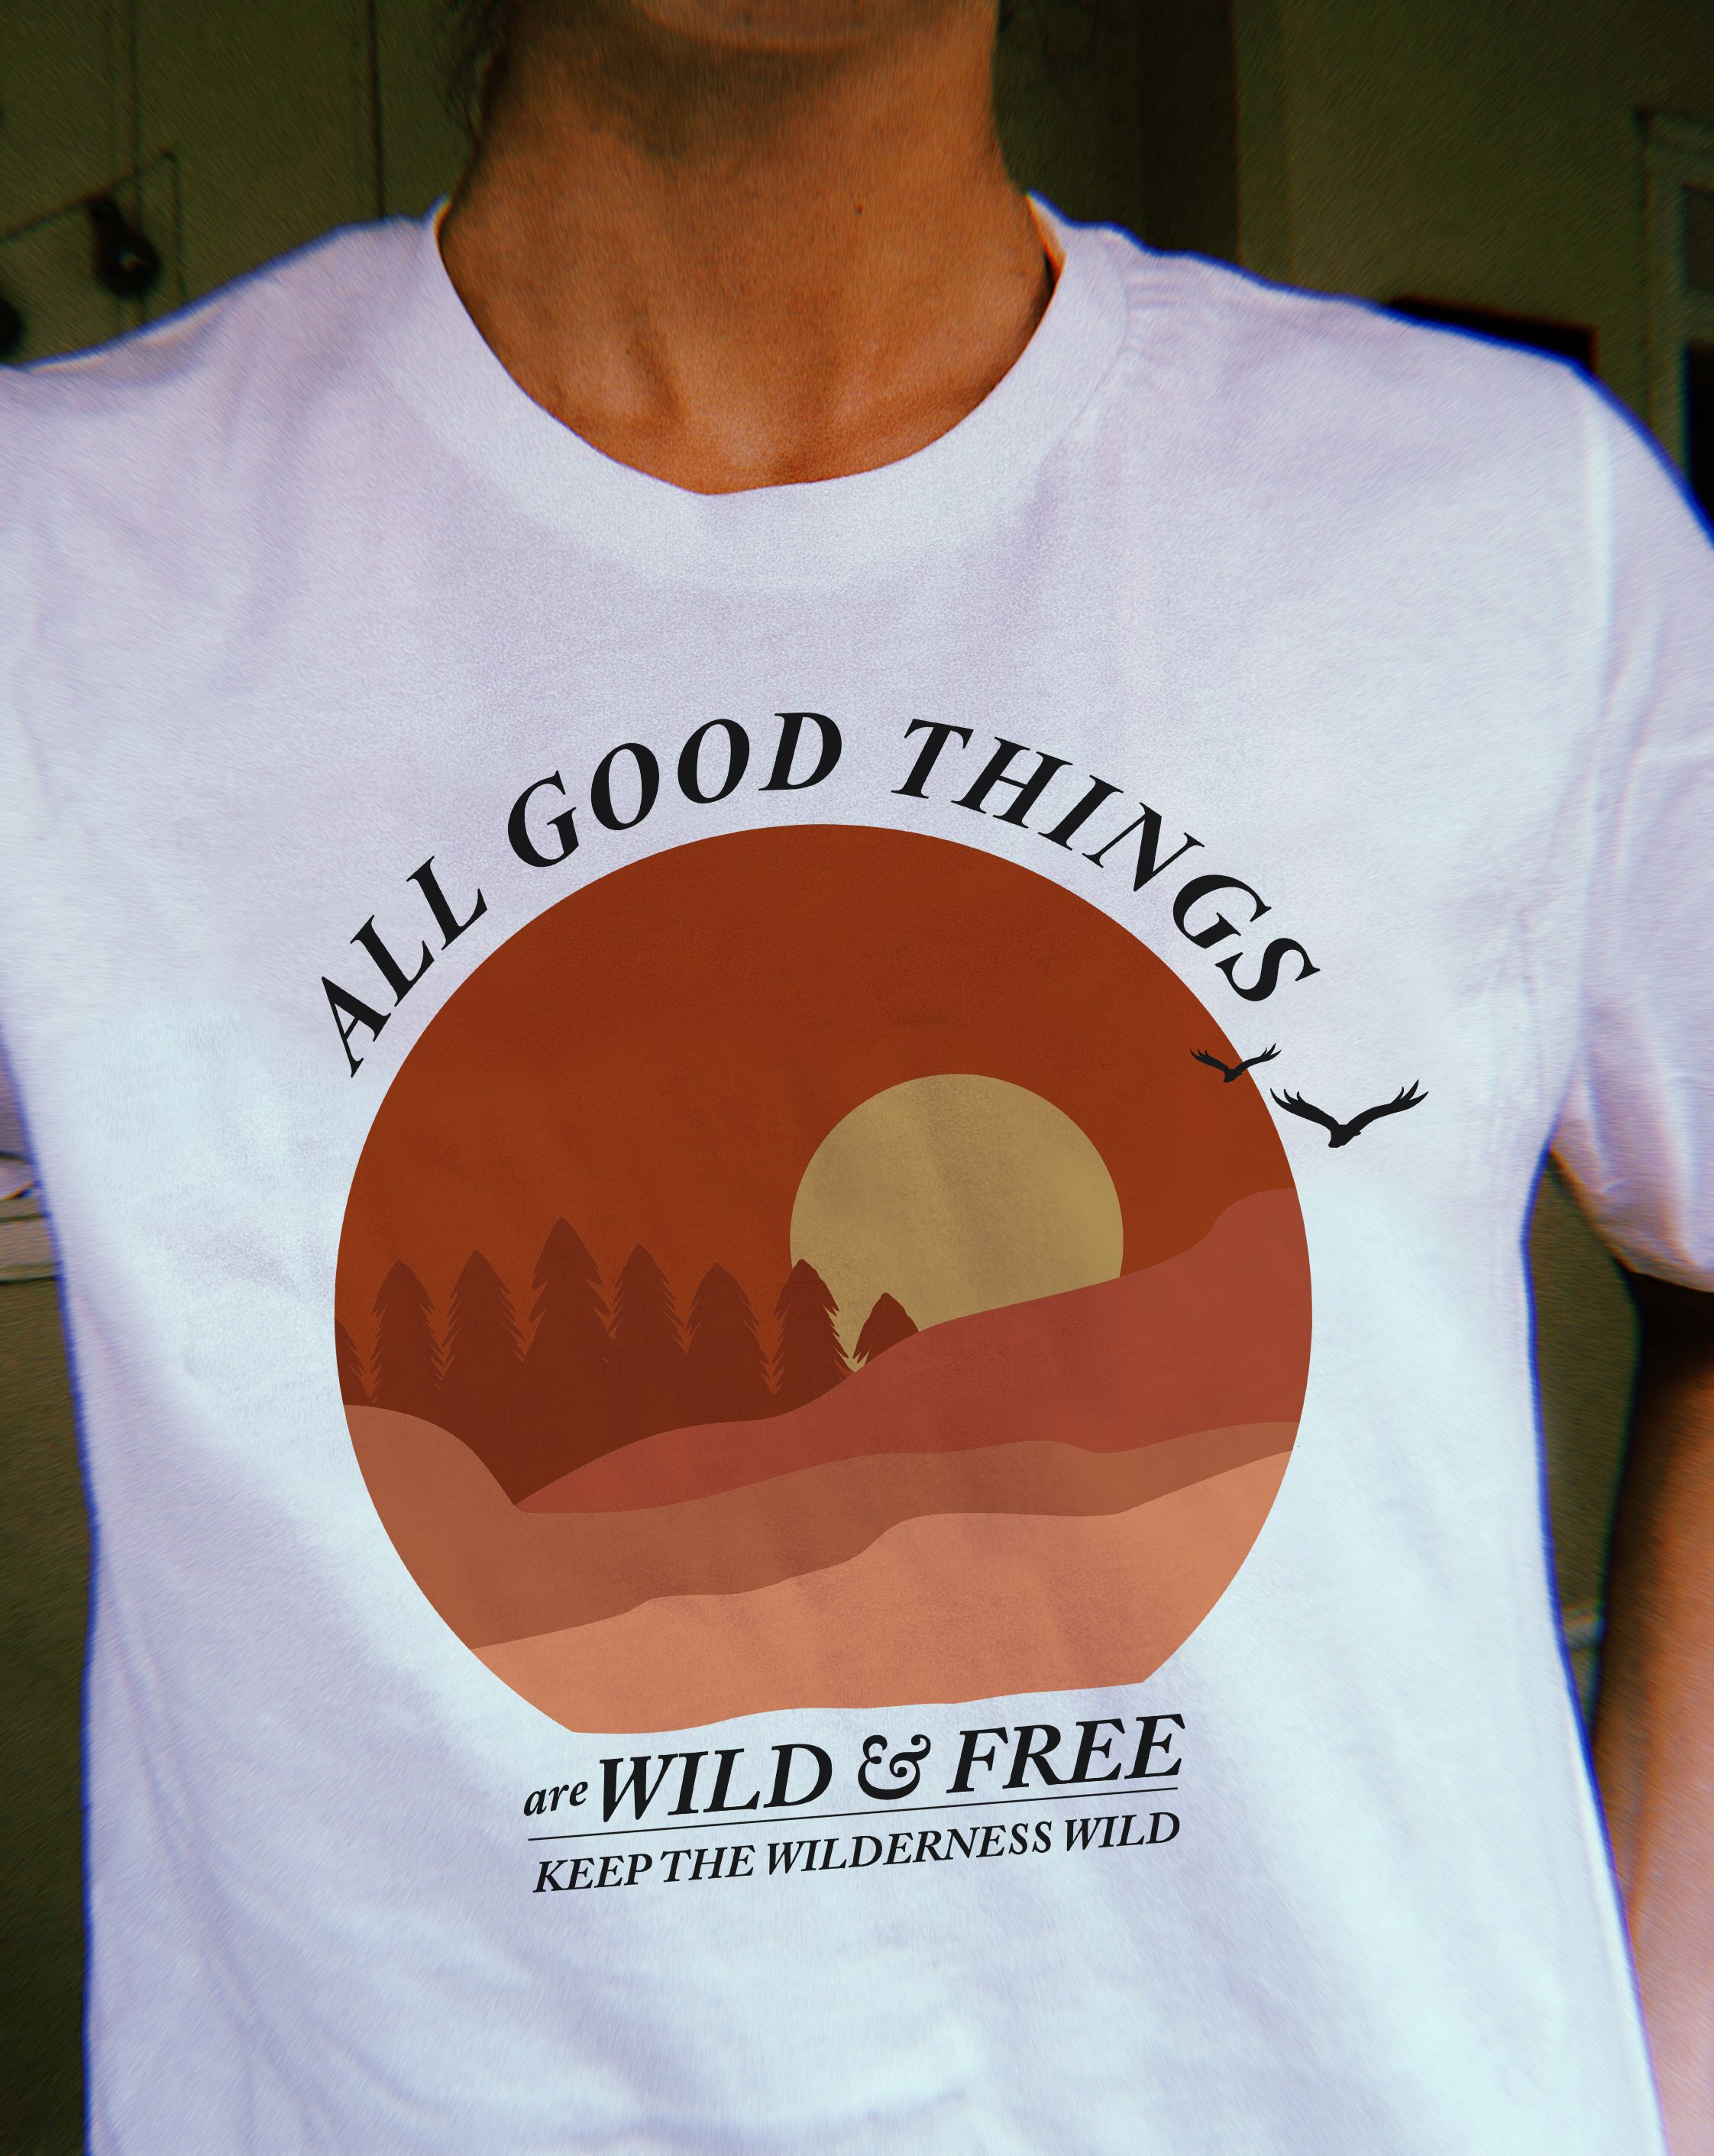 98894833cdde All good things are wild and free vintage inspired graphic t-shirt.  #graphictee #vintageshirt